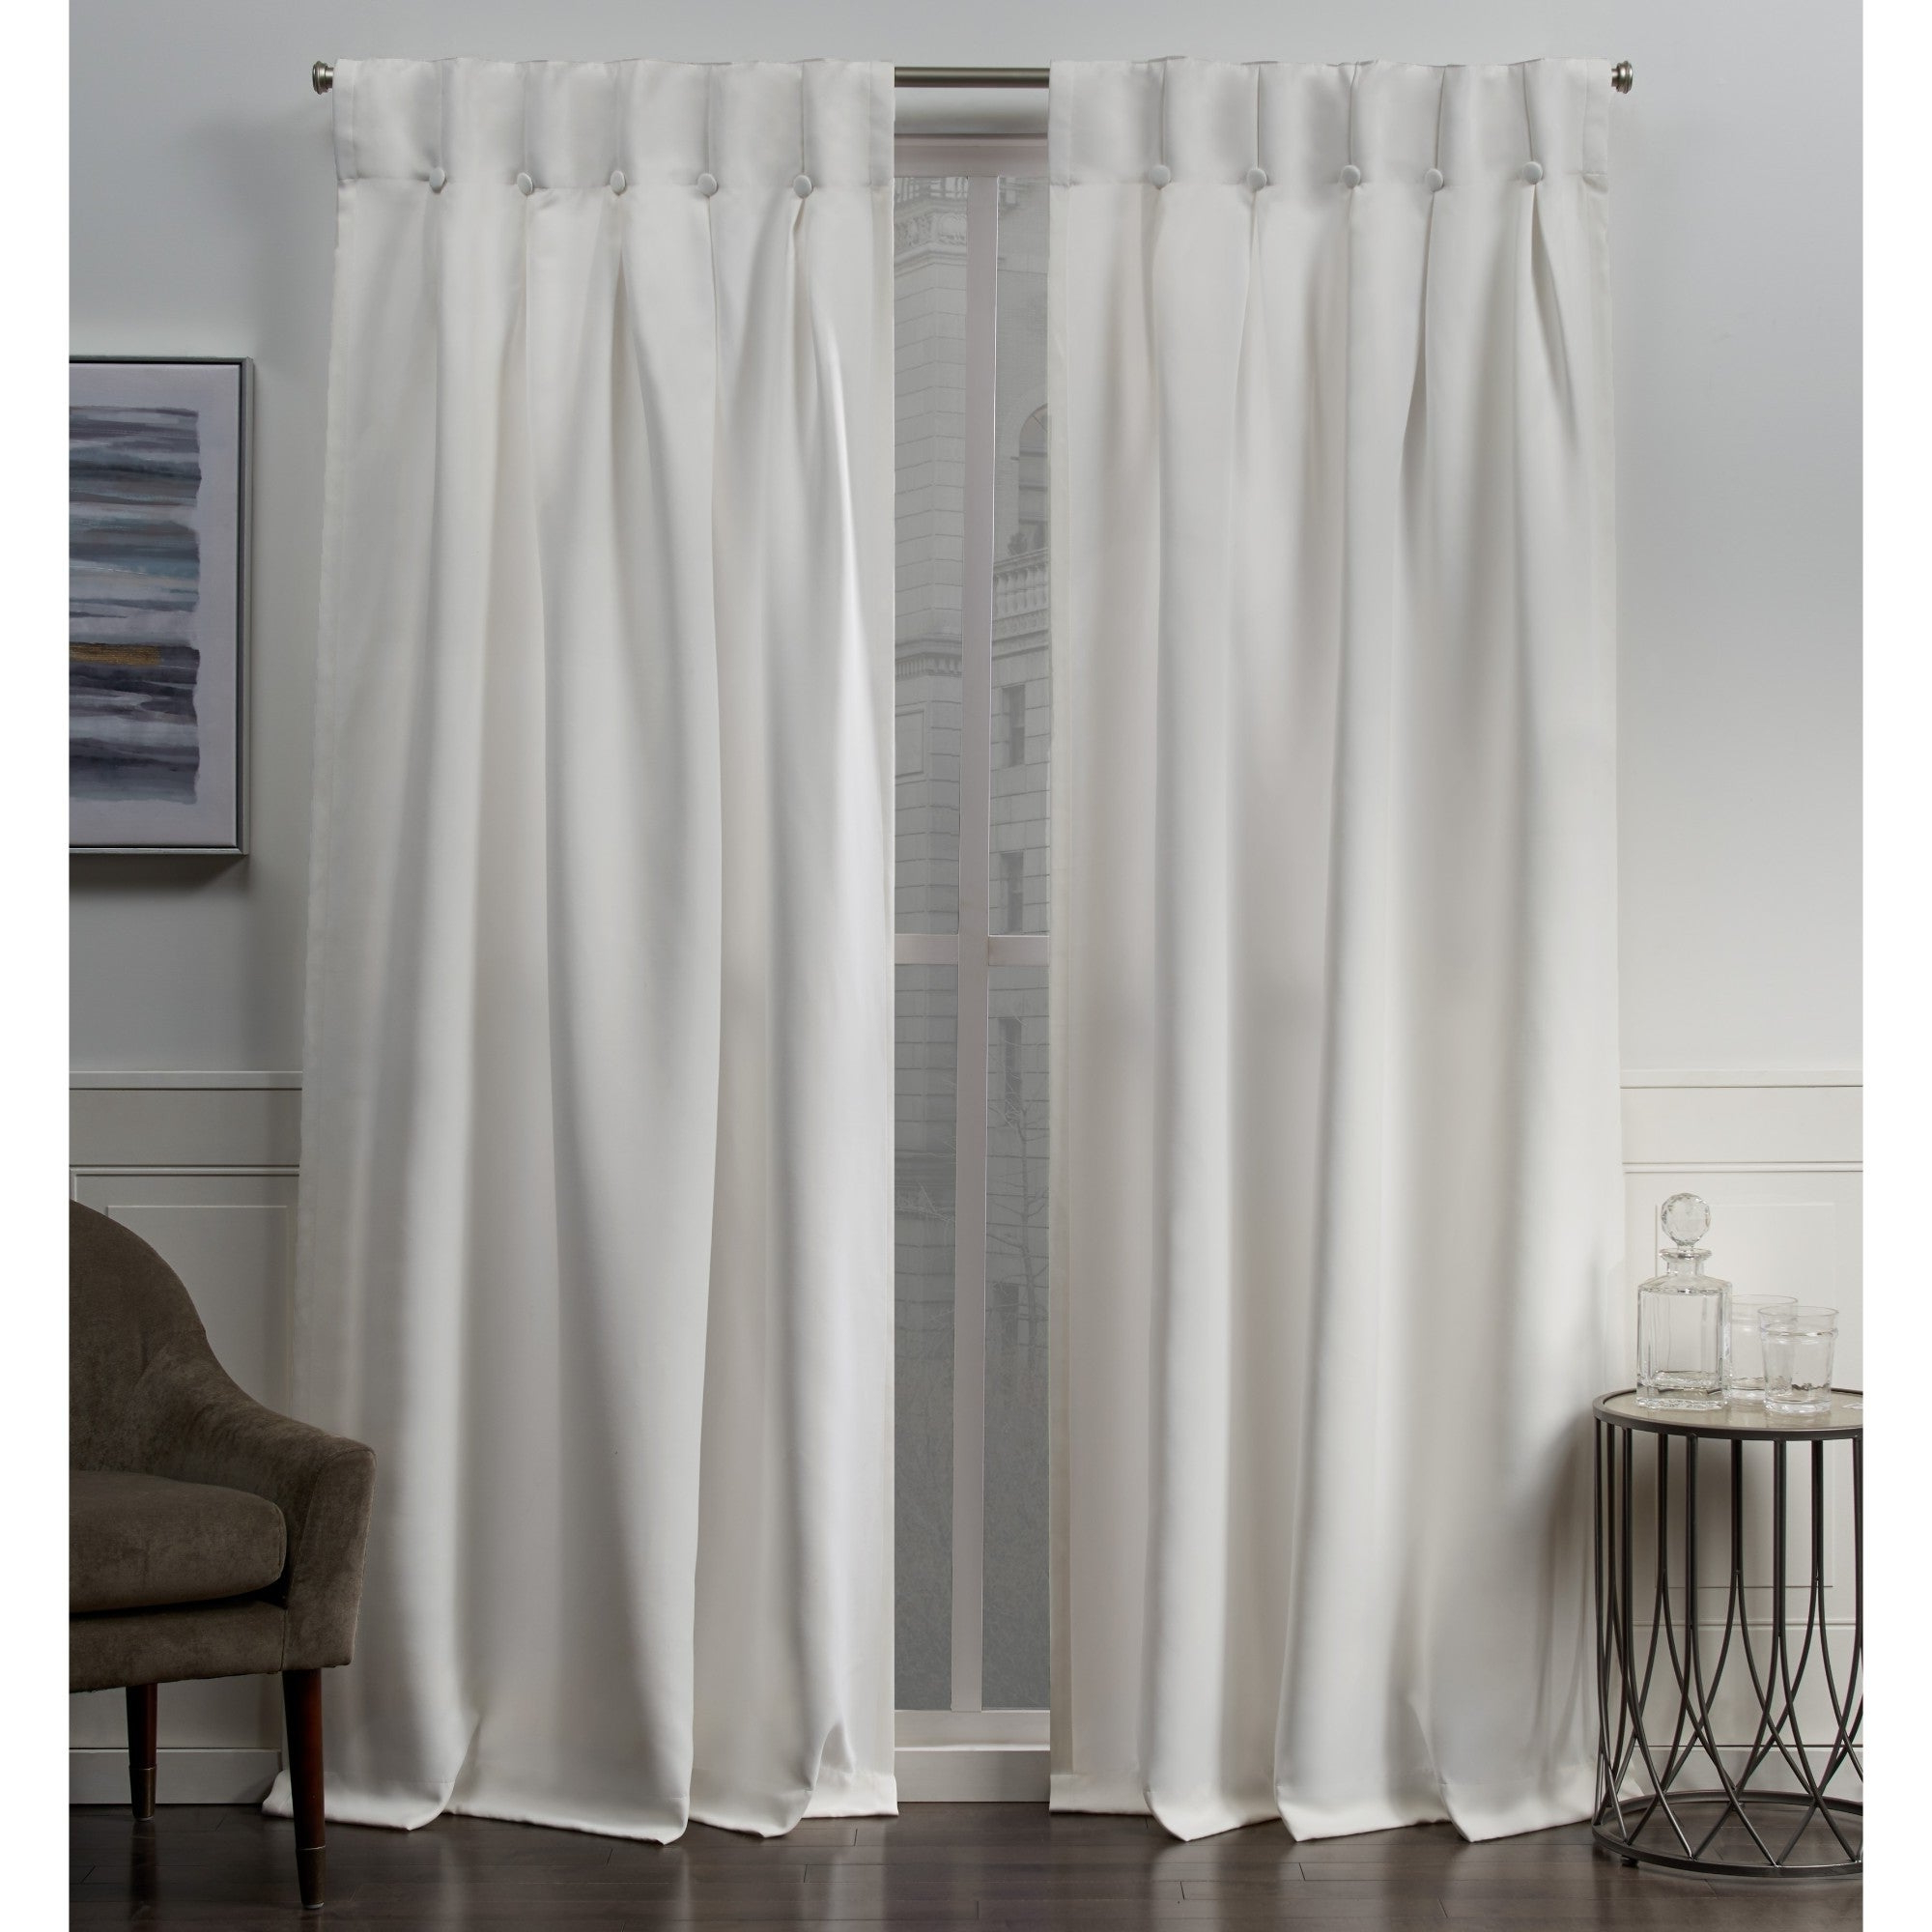 Newest Sateen Woven Blackout Curtain Panel Pairs With Pinch Pleat Top With Regard To Ati Home Sateen Woven Blackout Button Top Window Curtain Panel Pair (View 11 of 20)